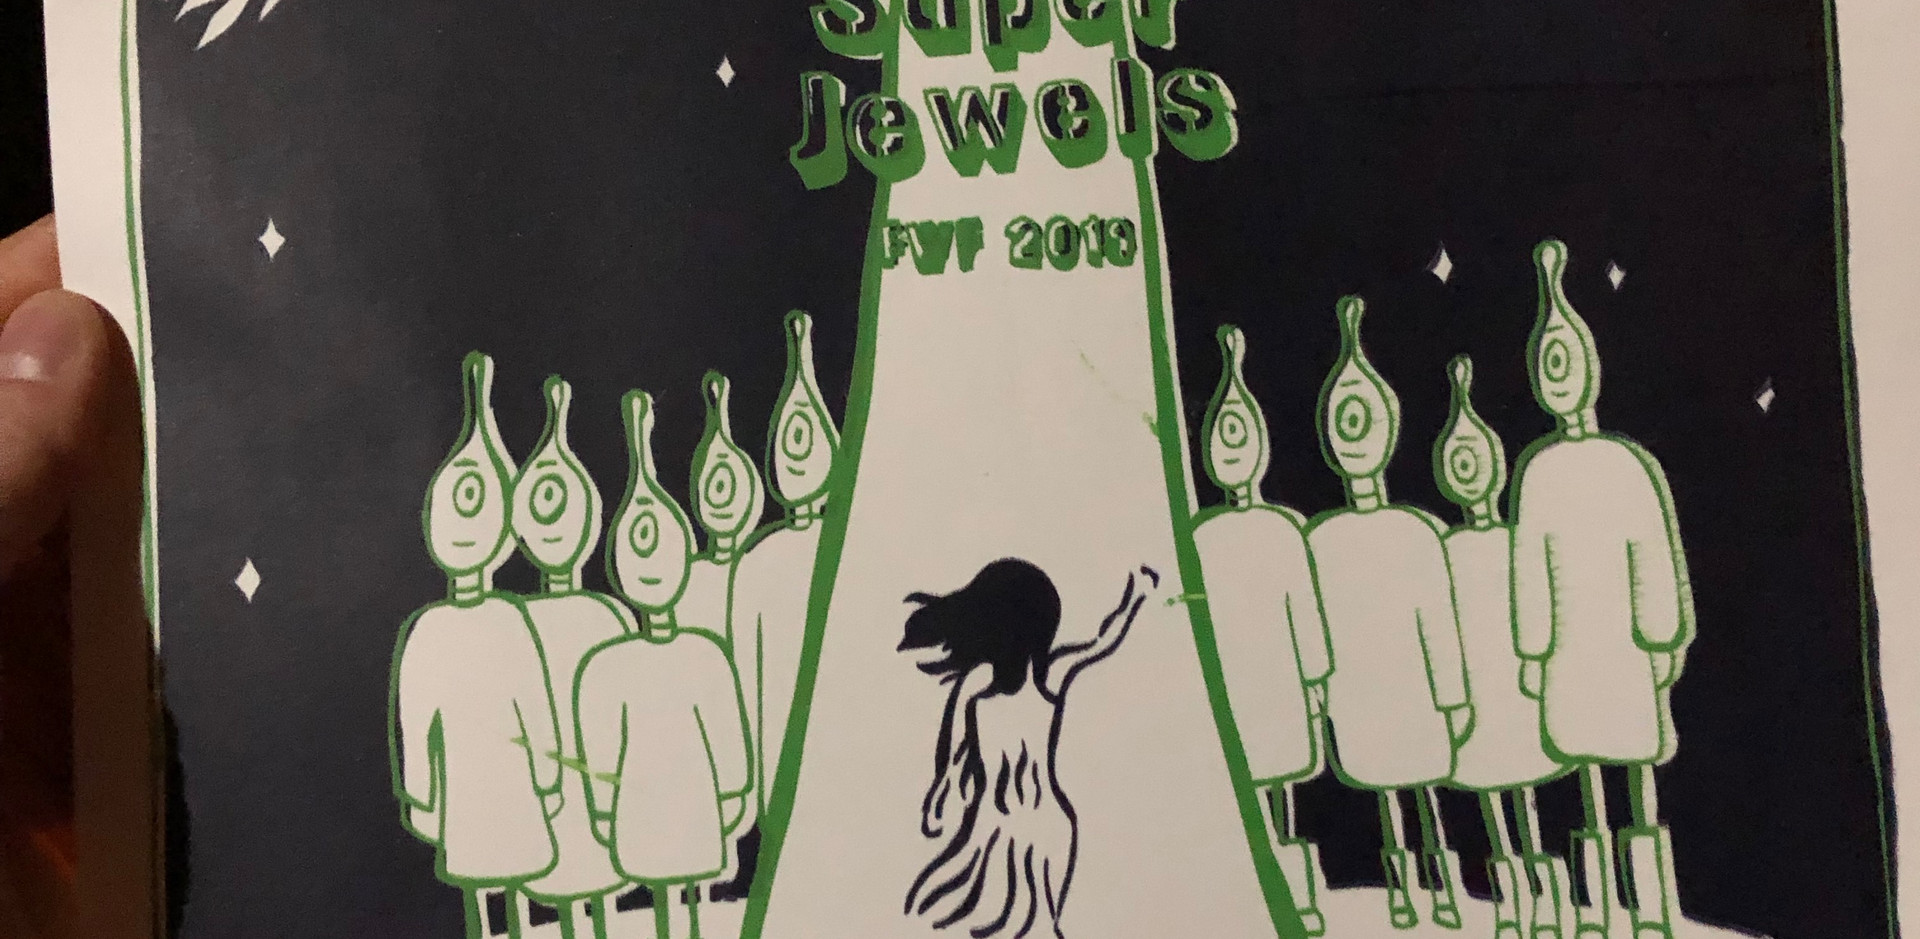 Cool screen print created by a camper inspired by the show!